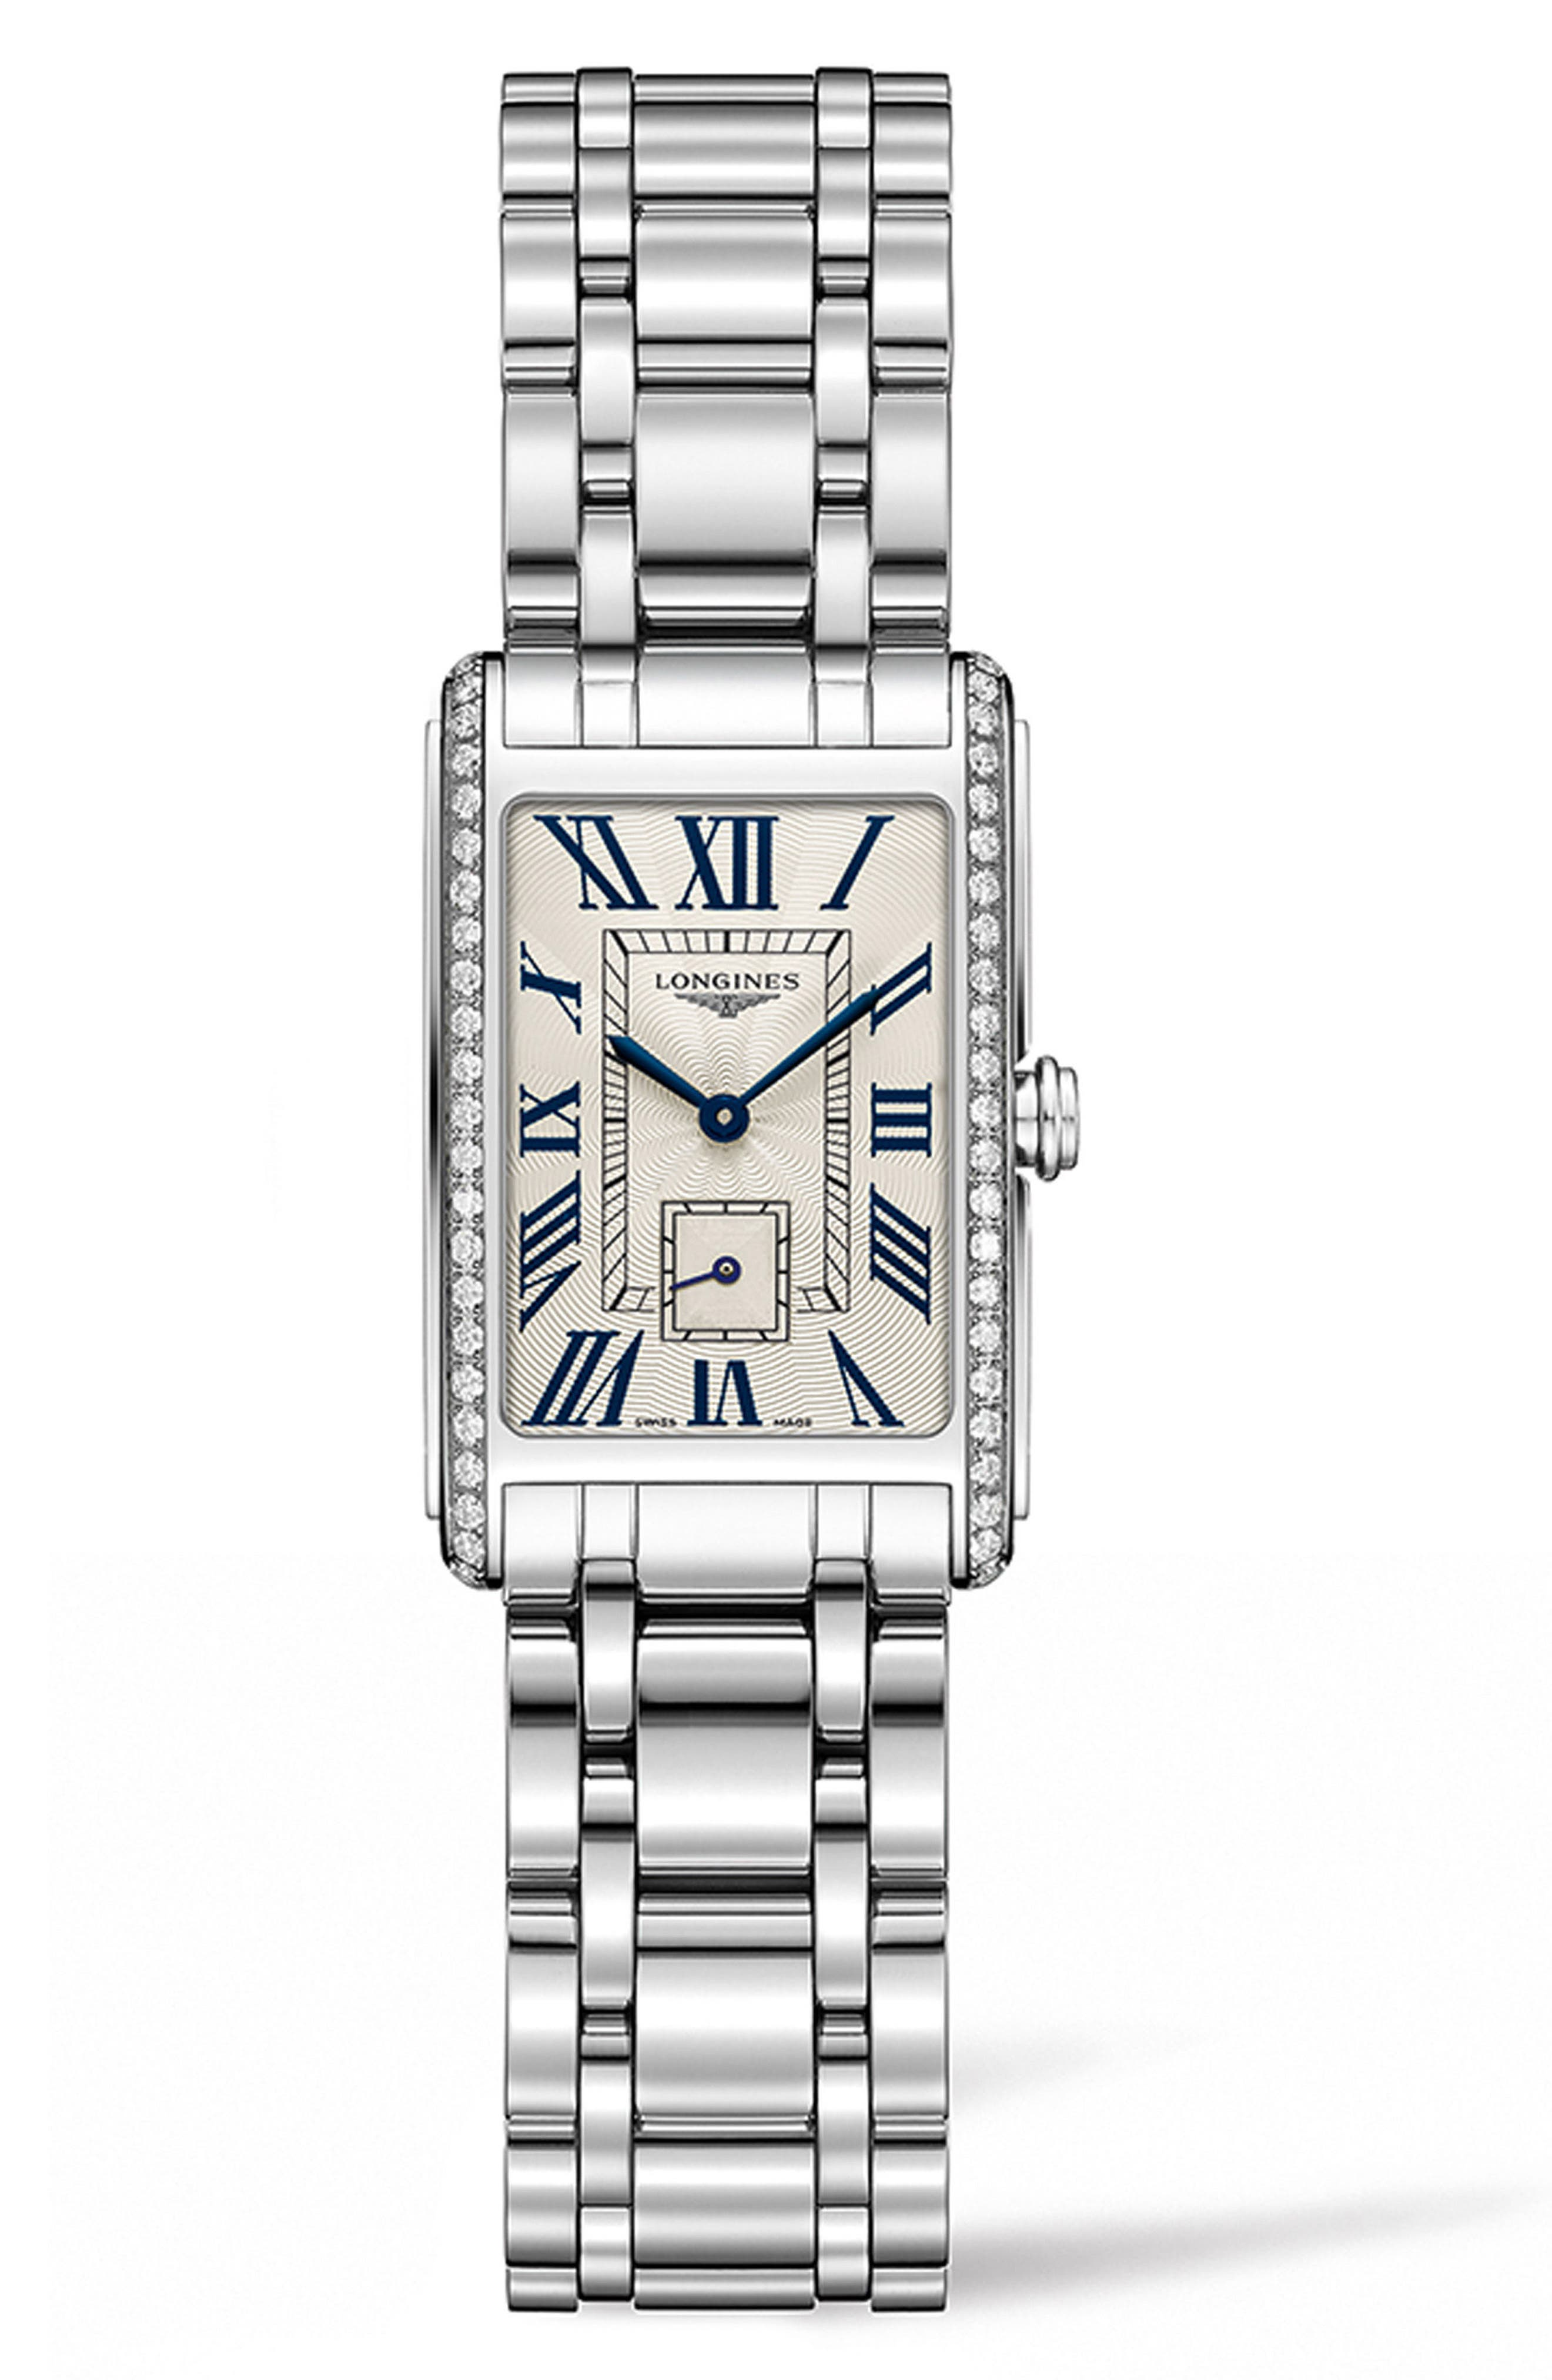 Main Image - Longines DolceVita Diamond Bracelet Watch, 20.5mm x 32mm